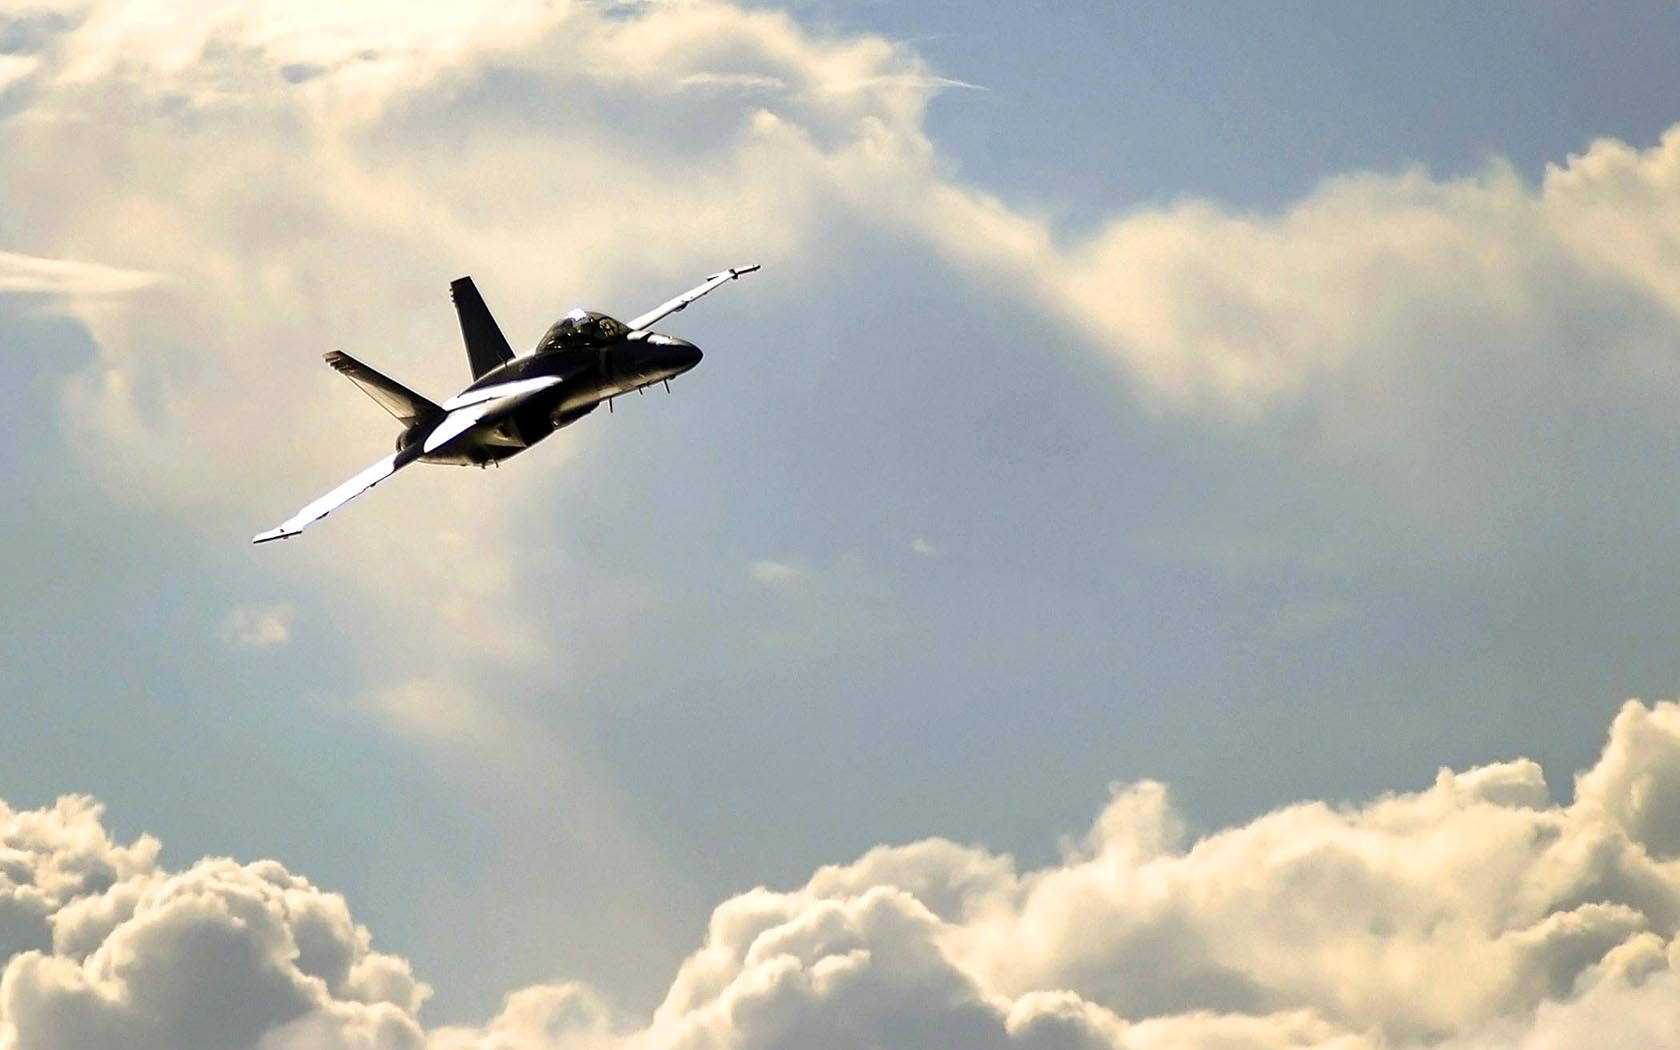 mcdonnell douglas f/a-18 hornet wallpaper and background image